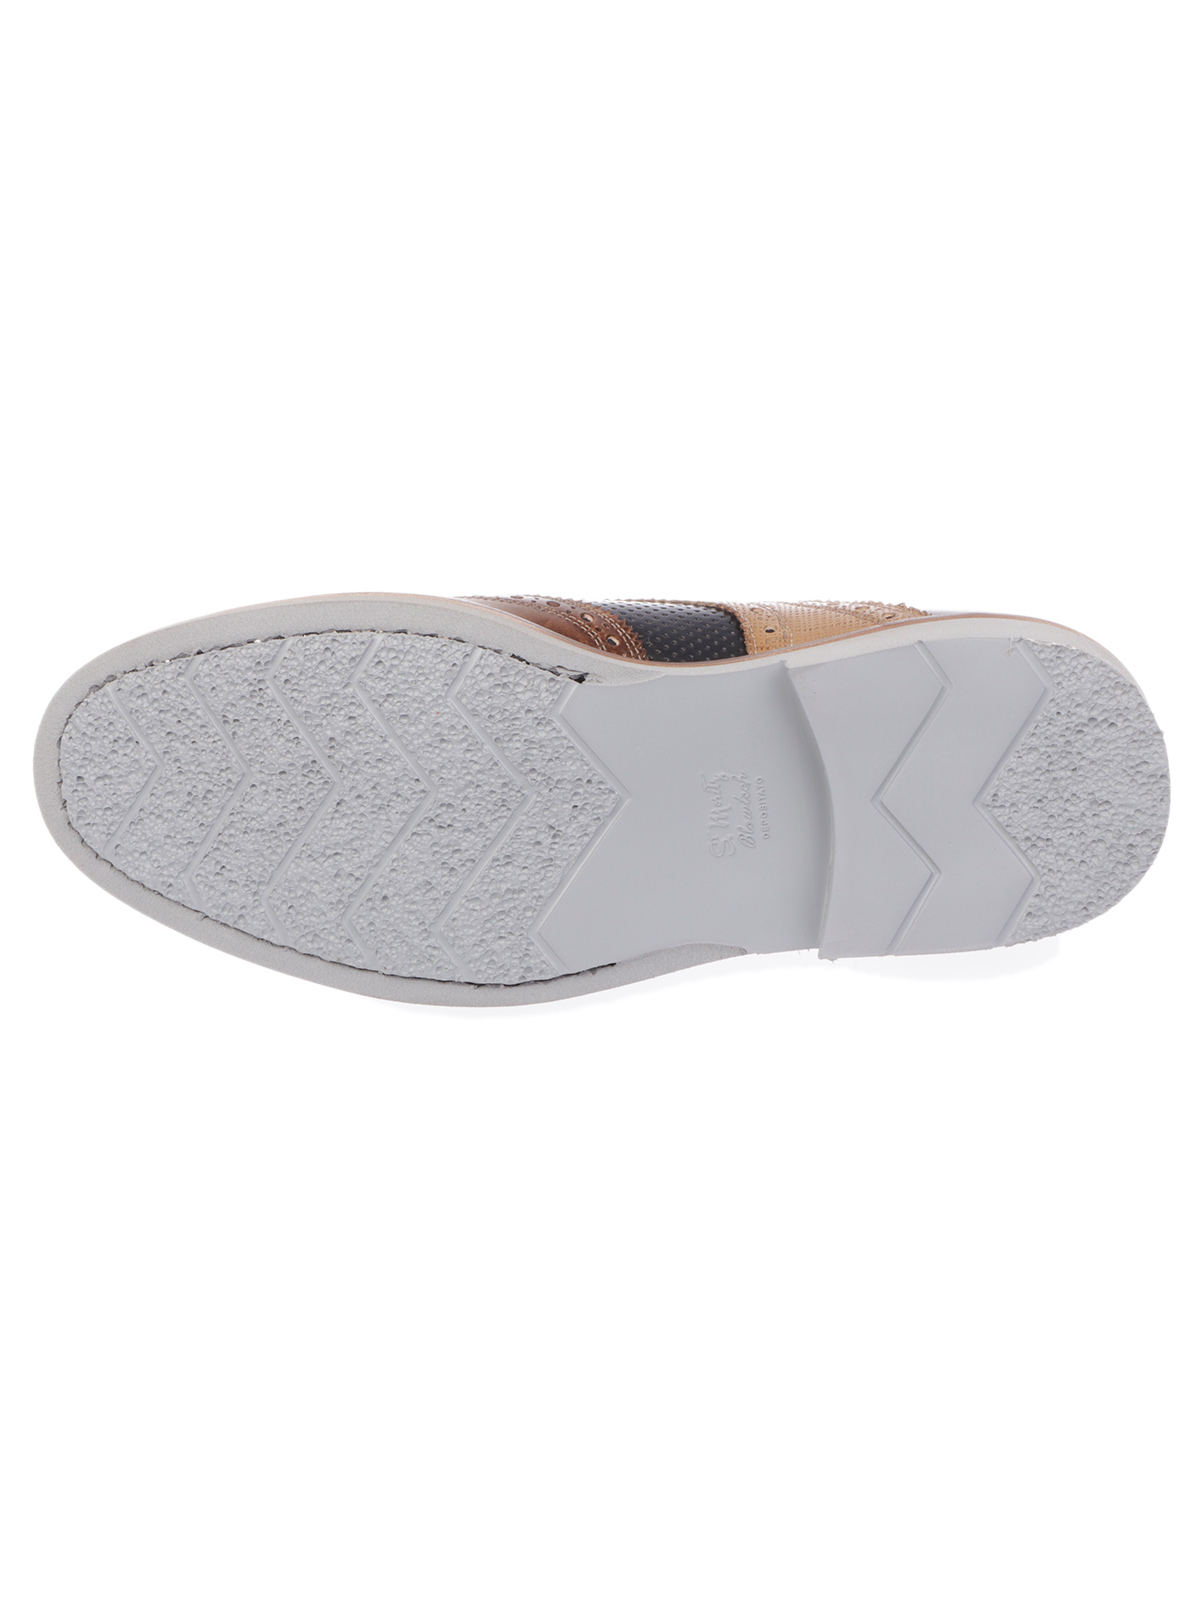 Picture of BOTTI | Men's Laced-Up Shoe